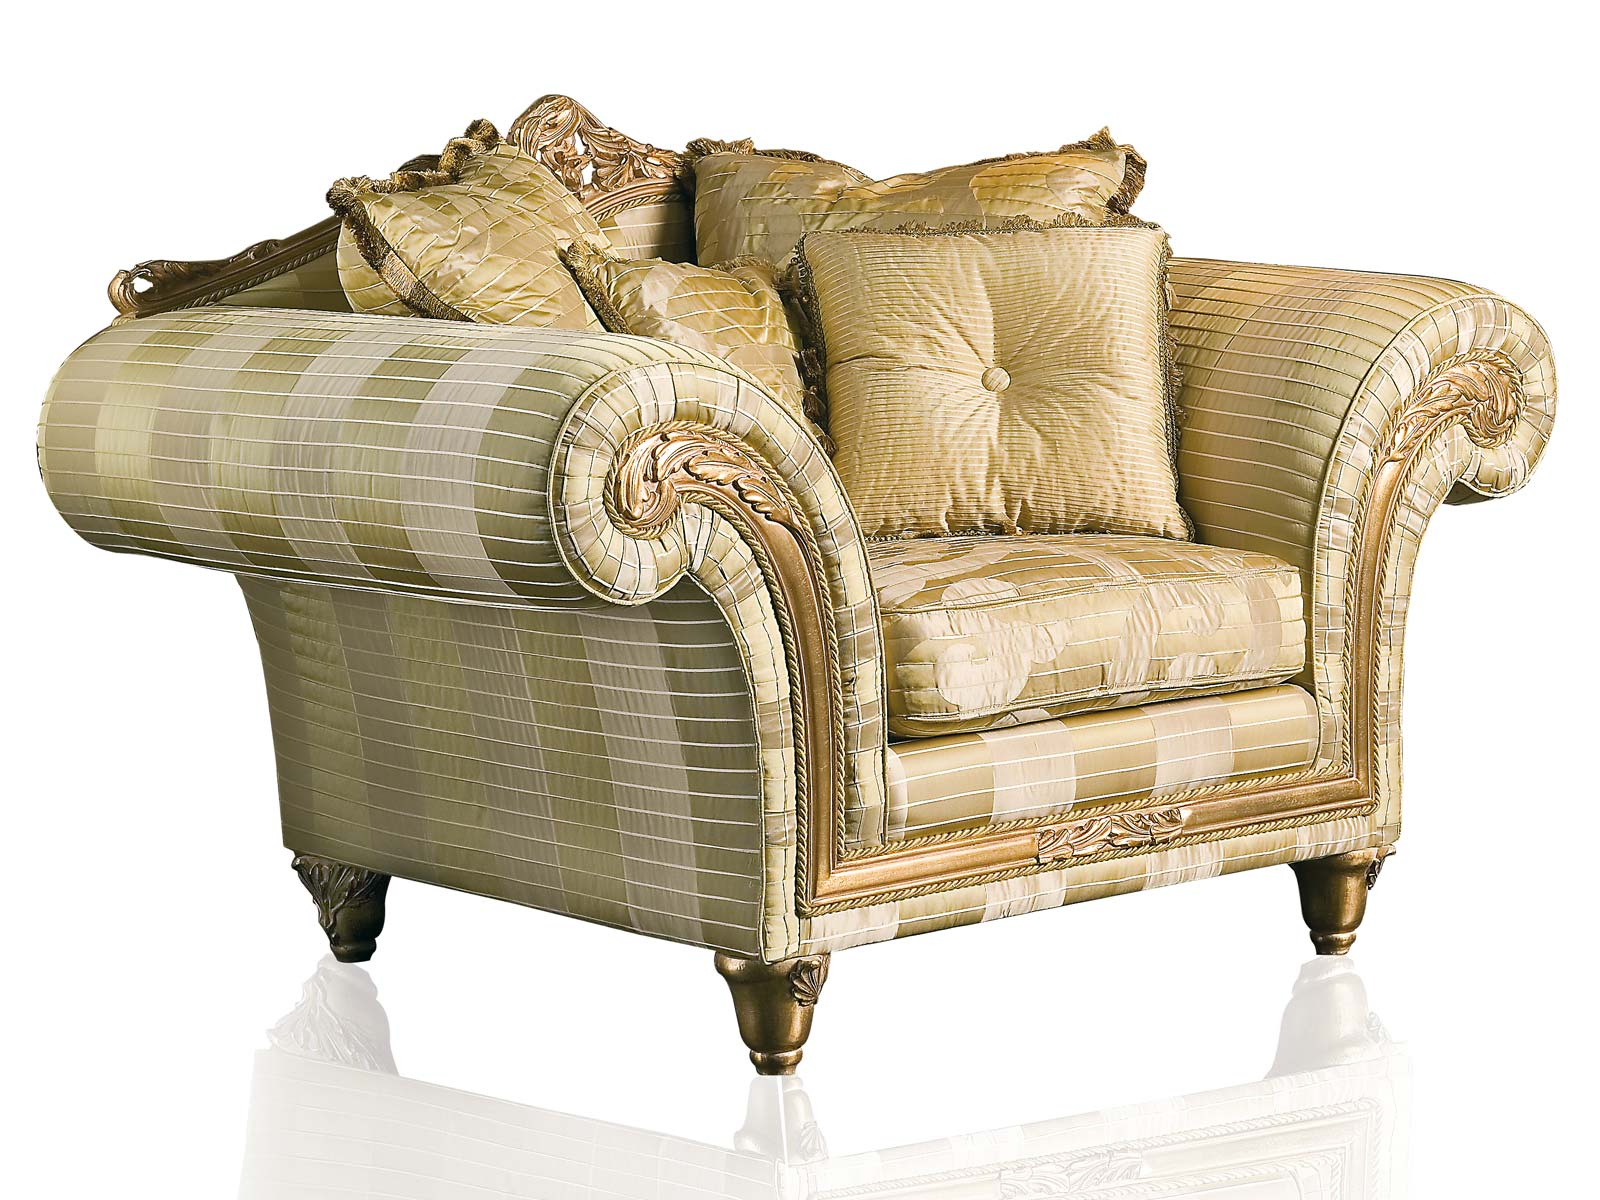 Incredible Classic Sofa and Chair Design 1600 x 1200 · 269 kB · jpeg